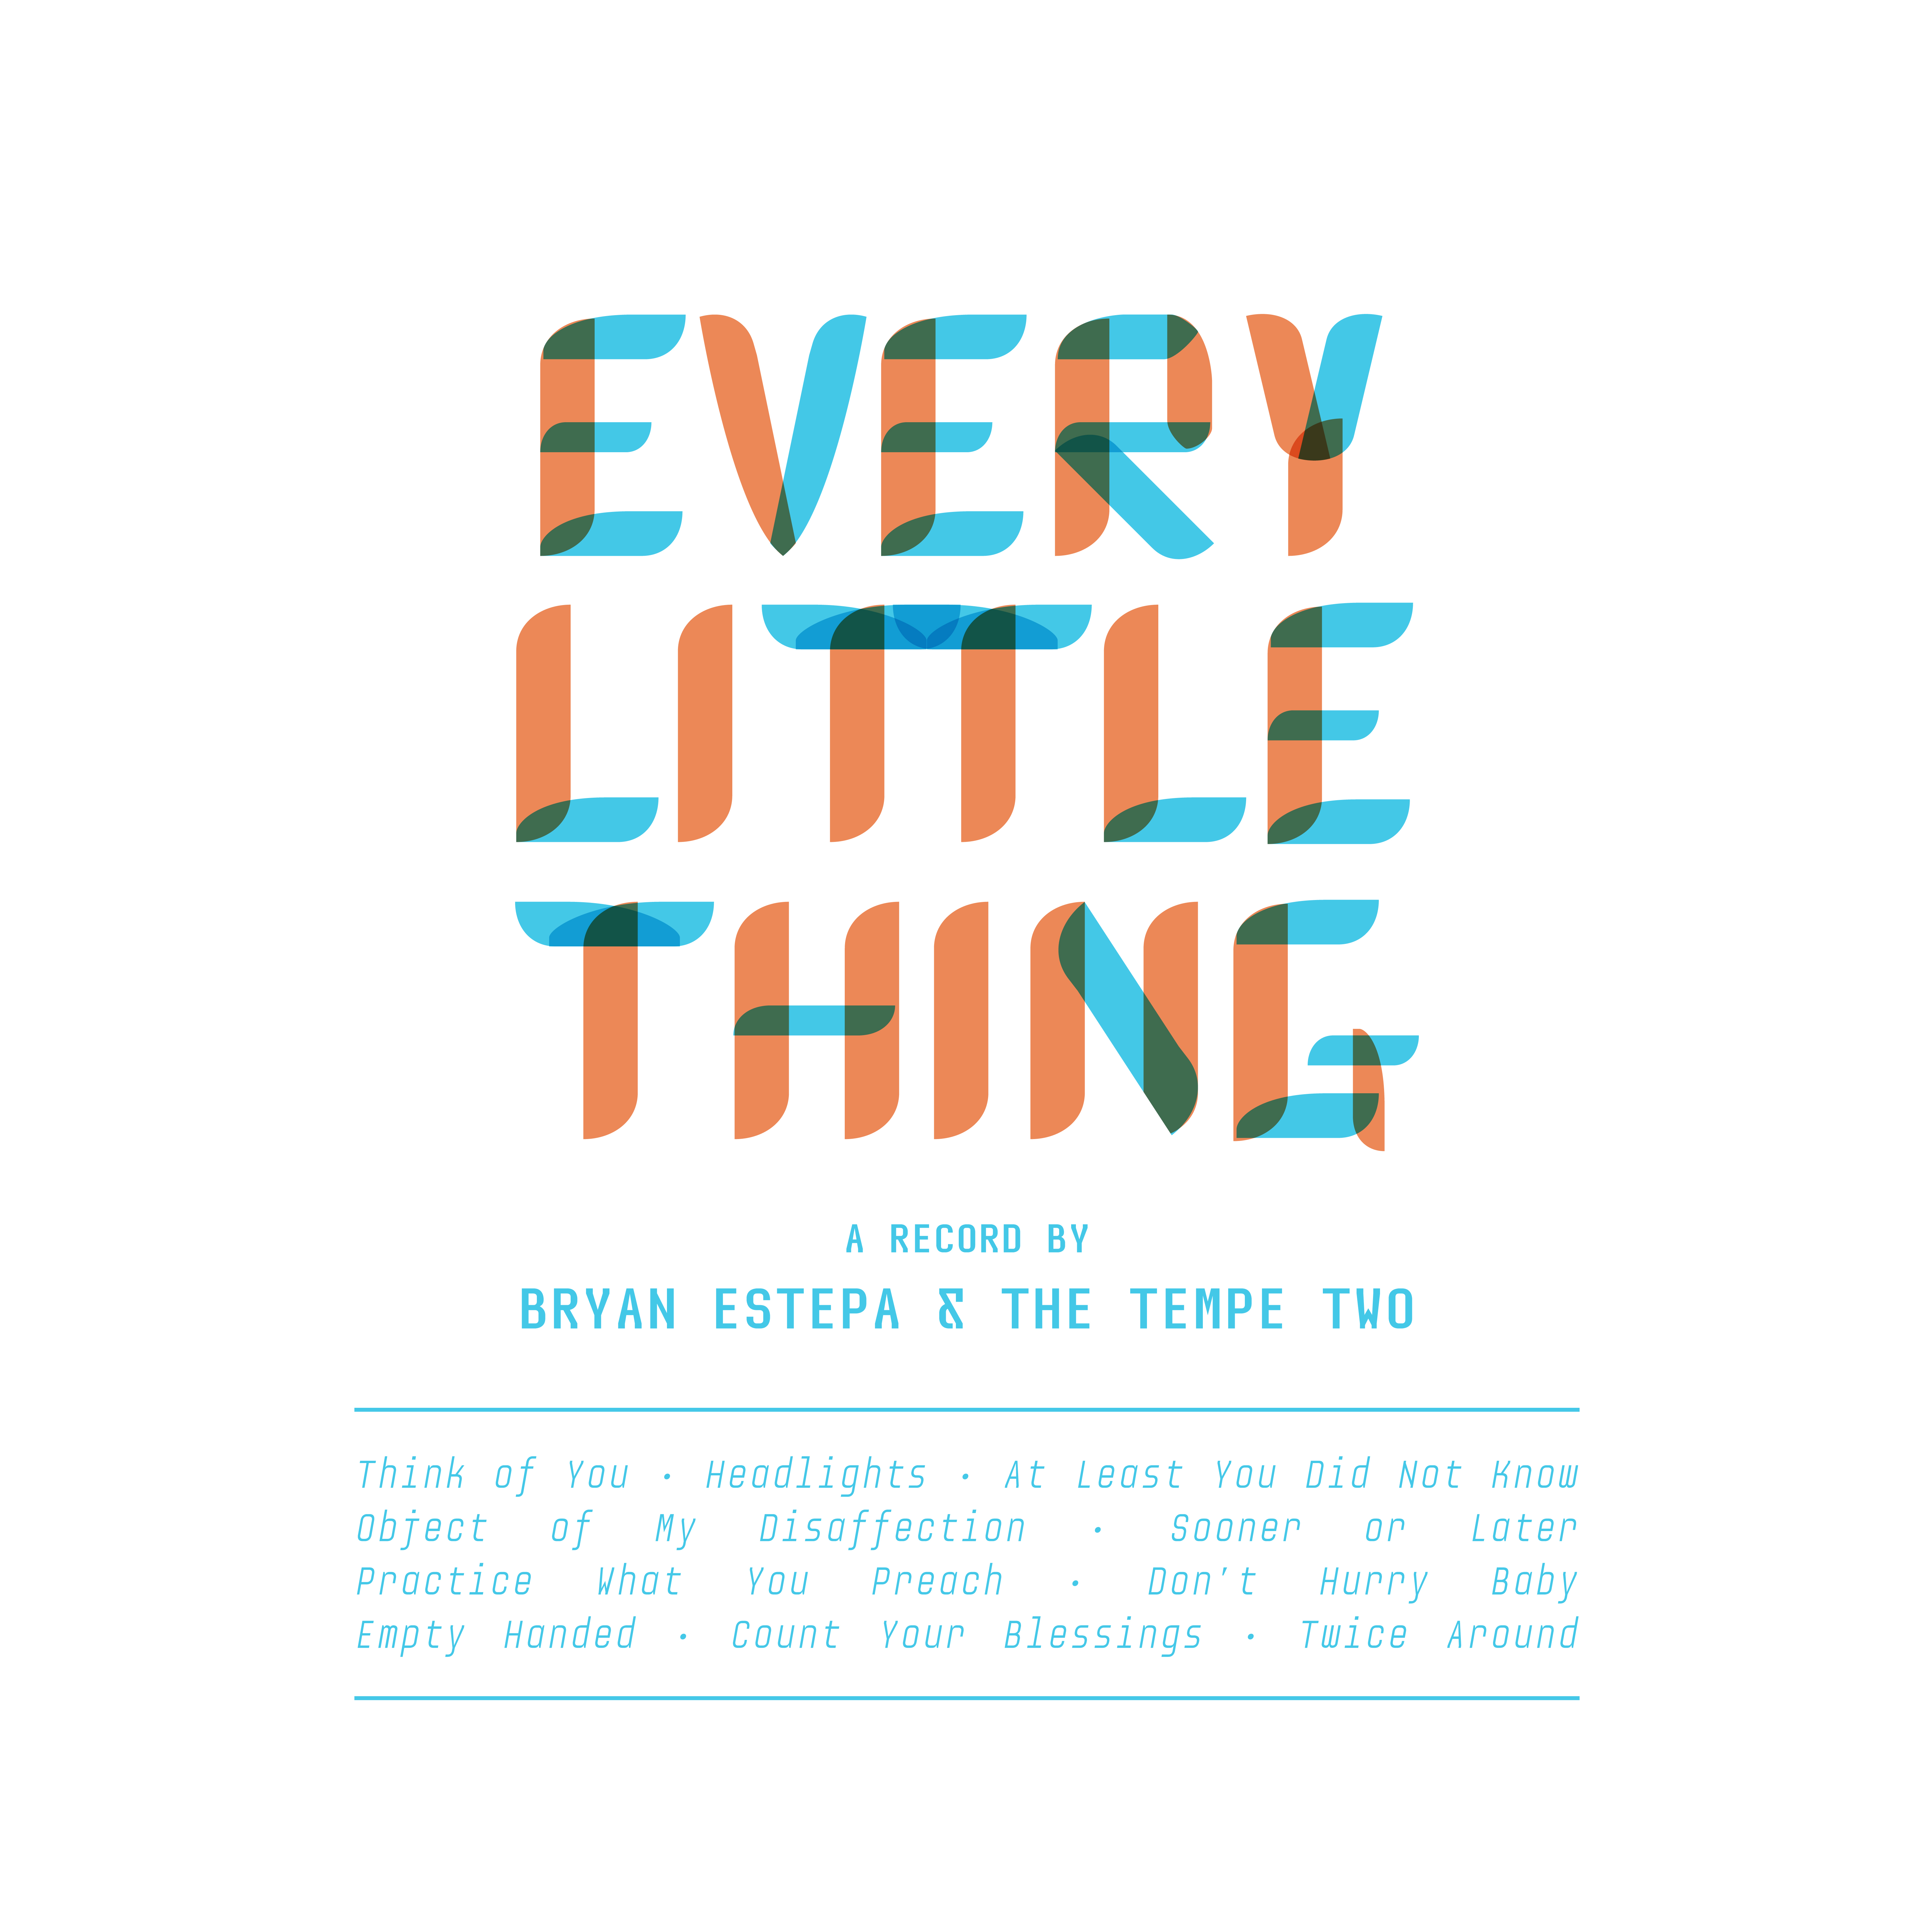 Every Little Thing - Bryan Estepa & The Tempe Two (Album) - LILYSTARS RECORDS